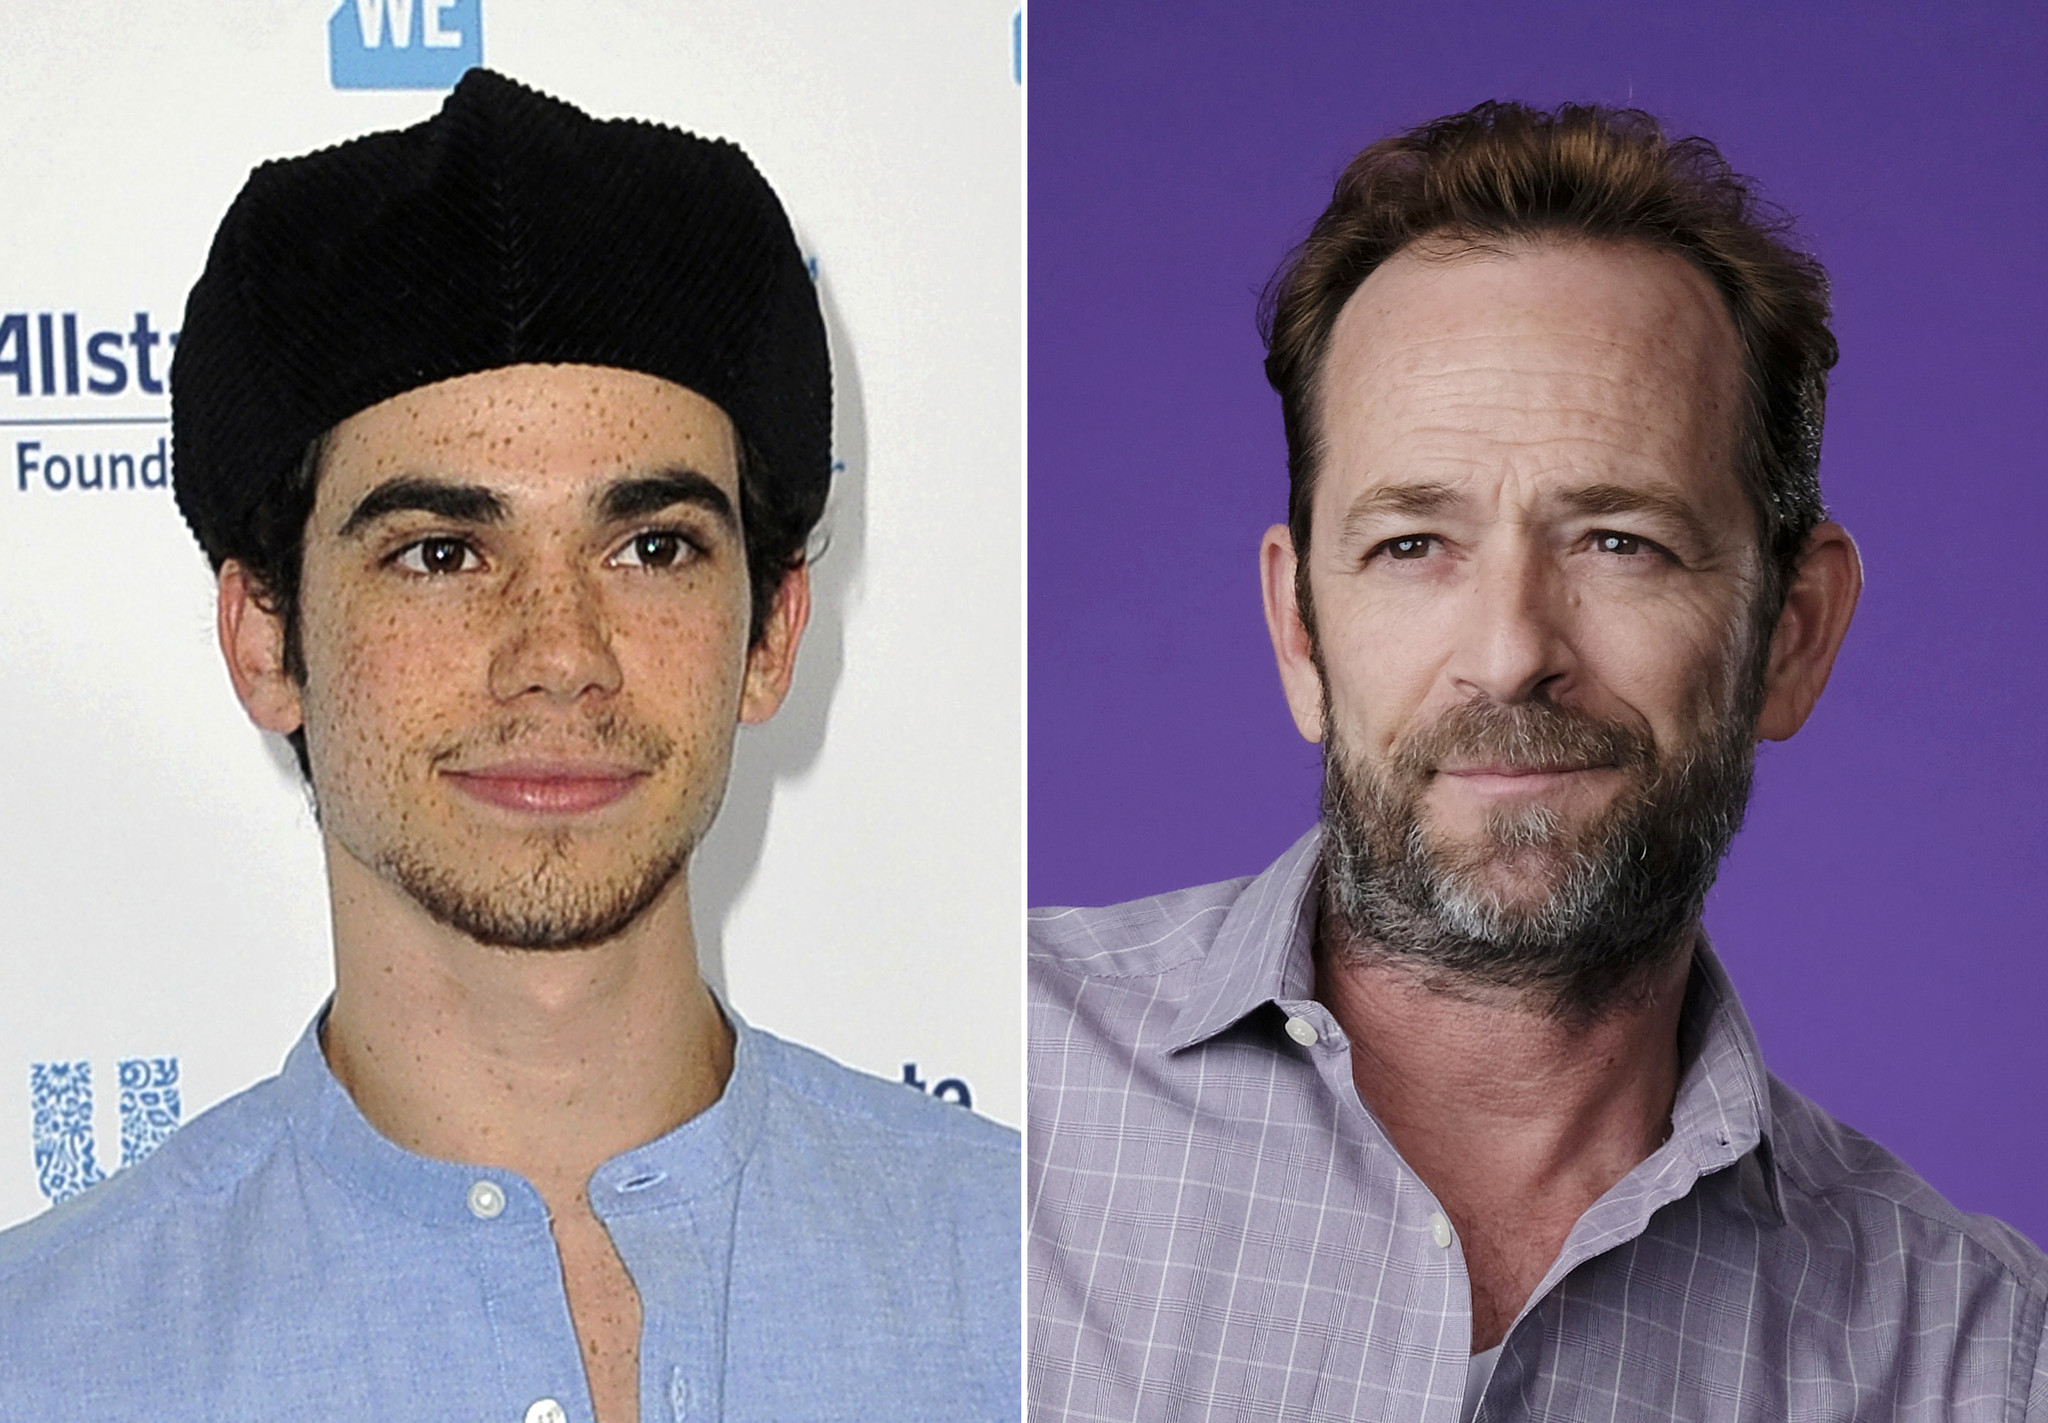 Luke Perry and Cameron Boyce absent from Oscars 'In Memoriam' for reason, officials say